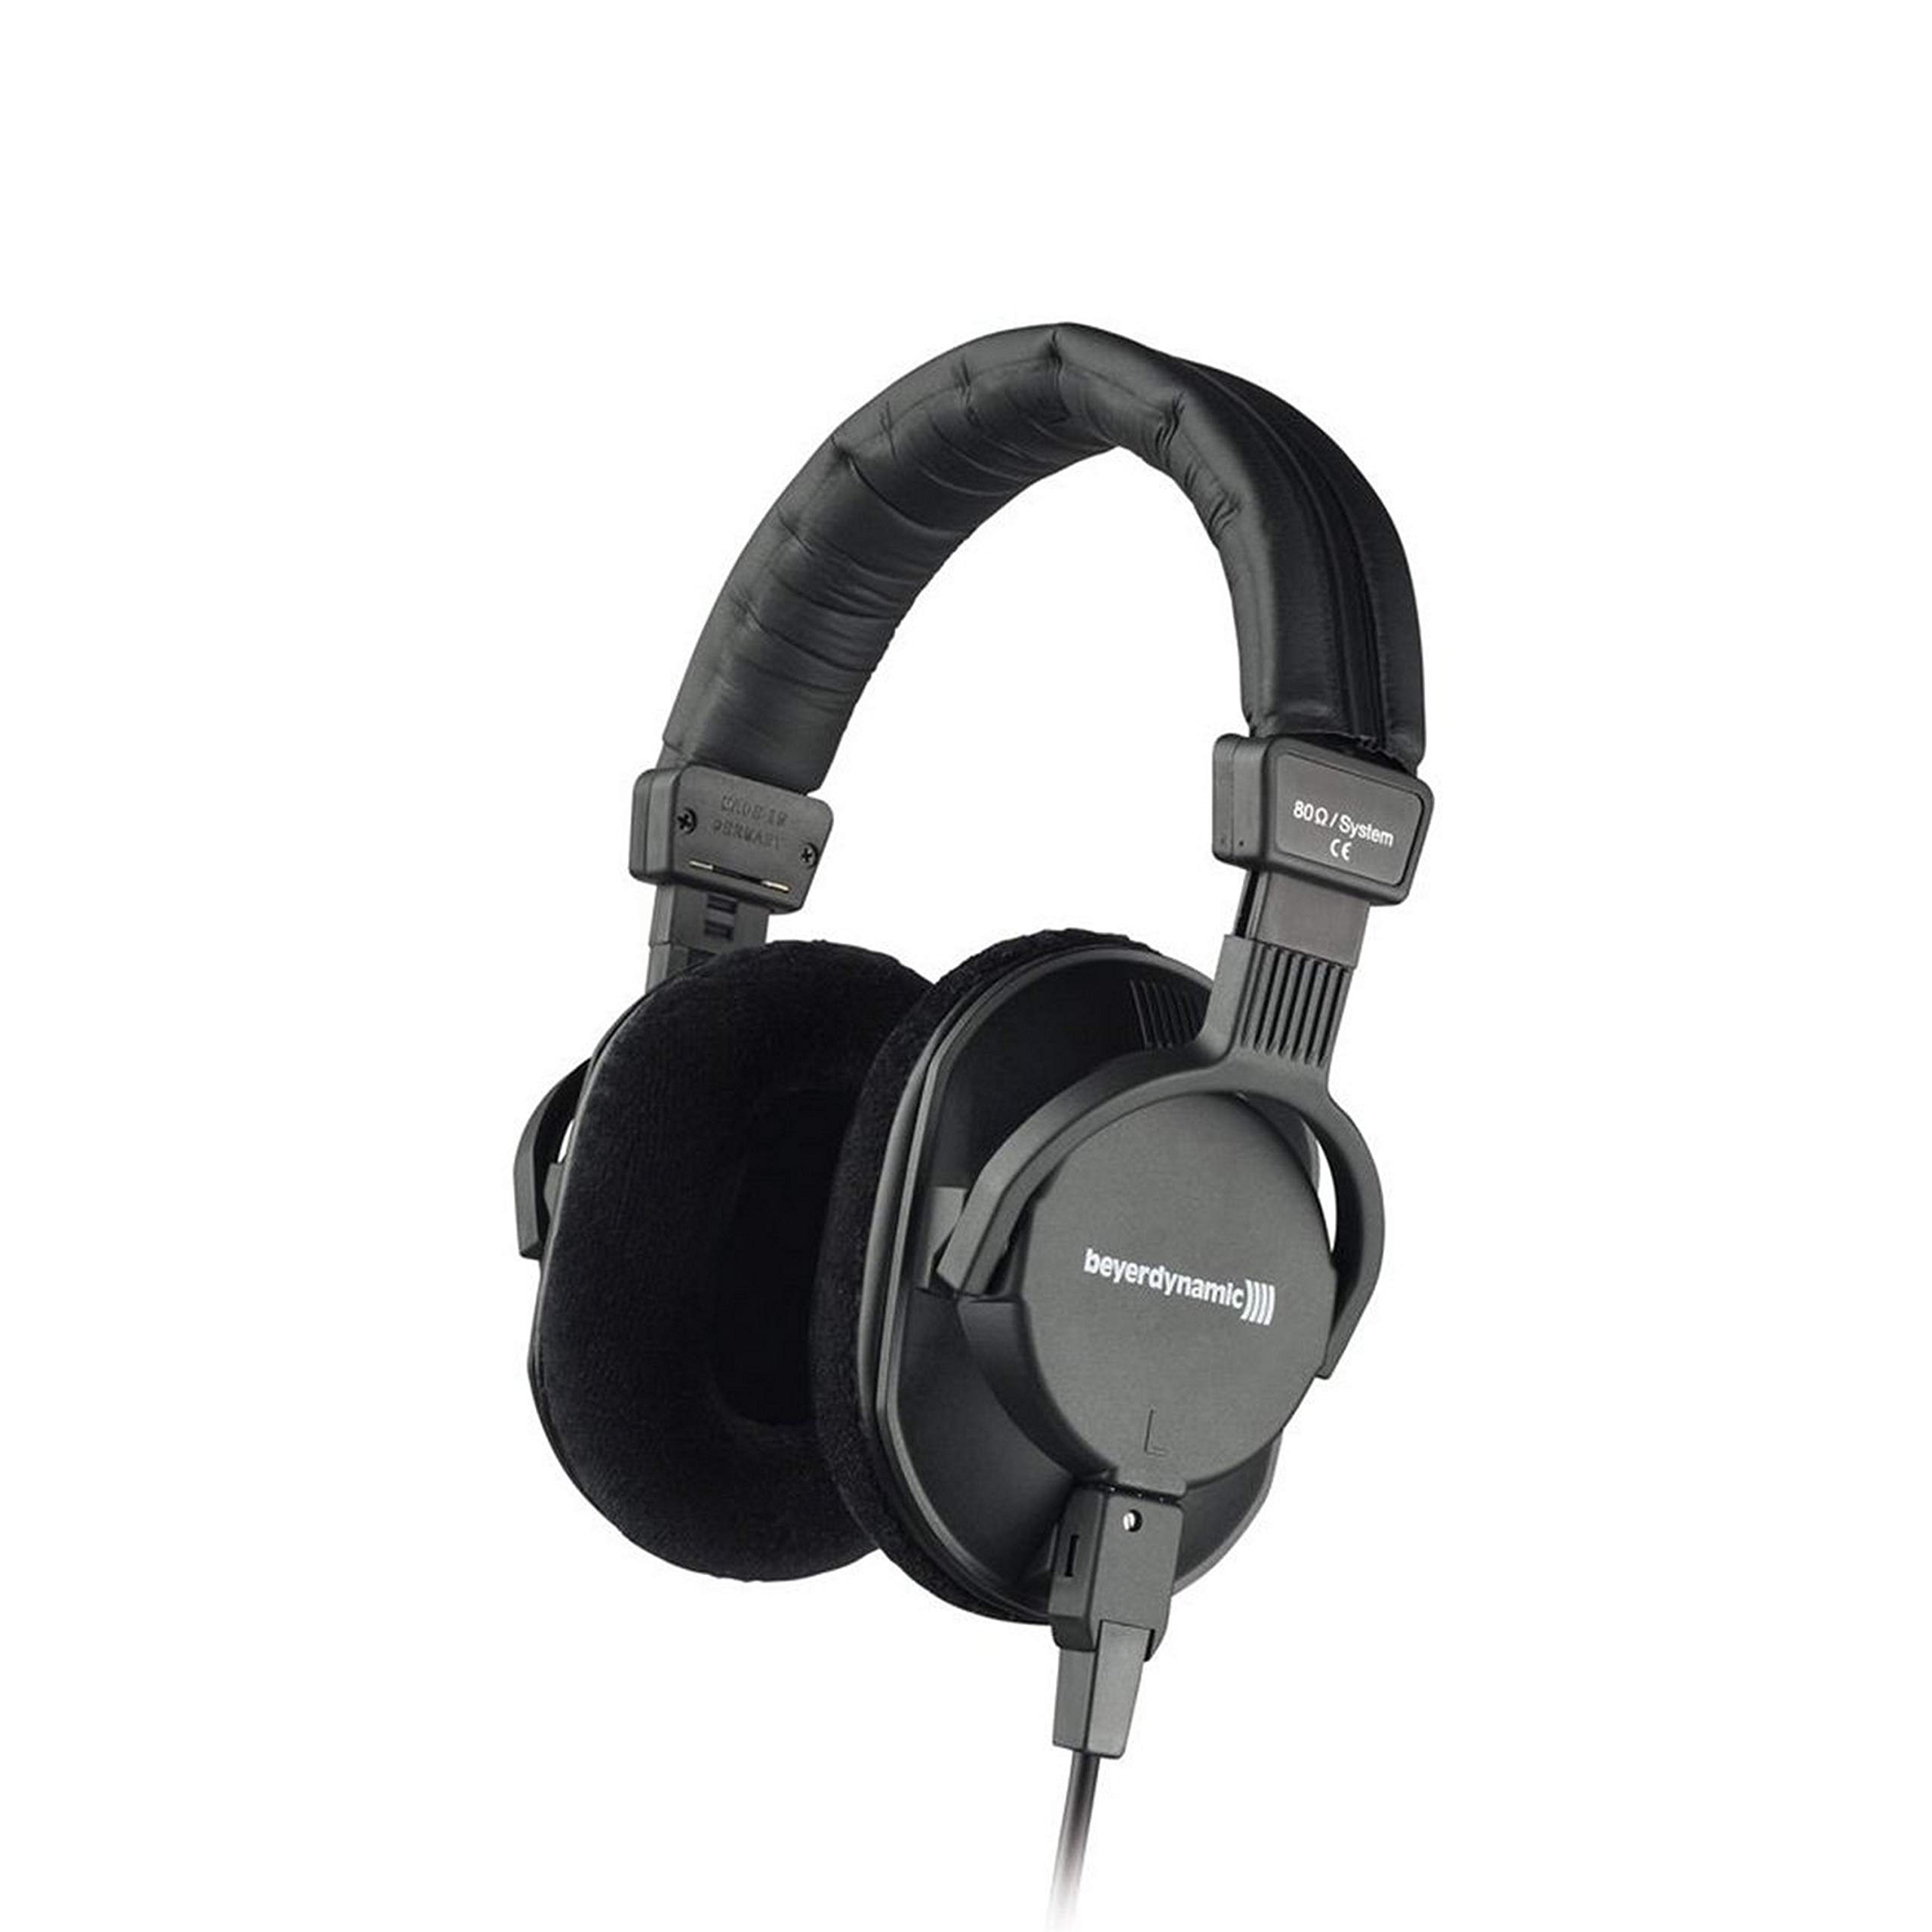 Beyerdynamic DT-250-250OHM Lightweight Closed Dynamic Headphone for Broadcast and Recording Applications, 250 Ohms